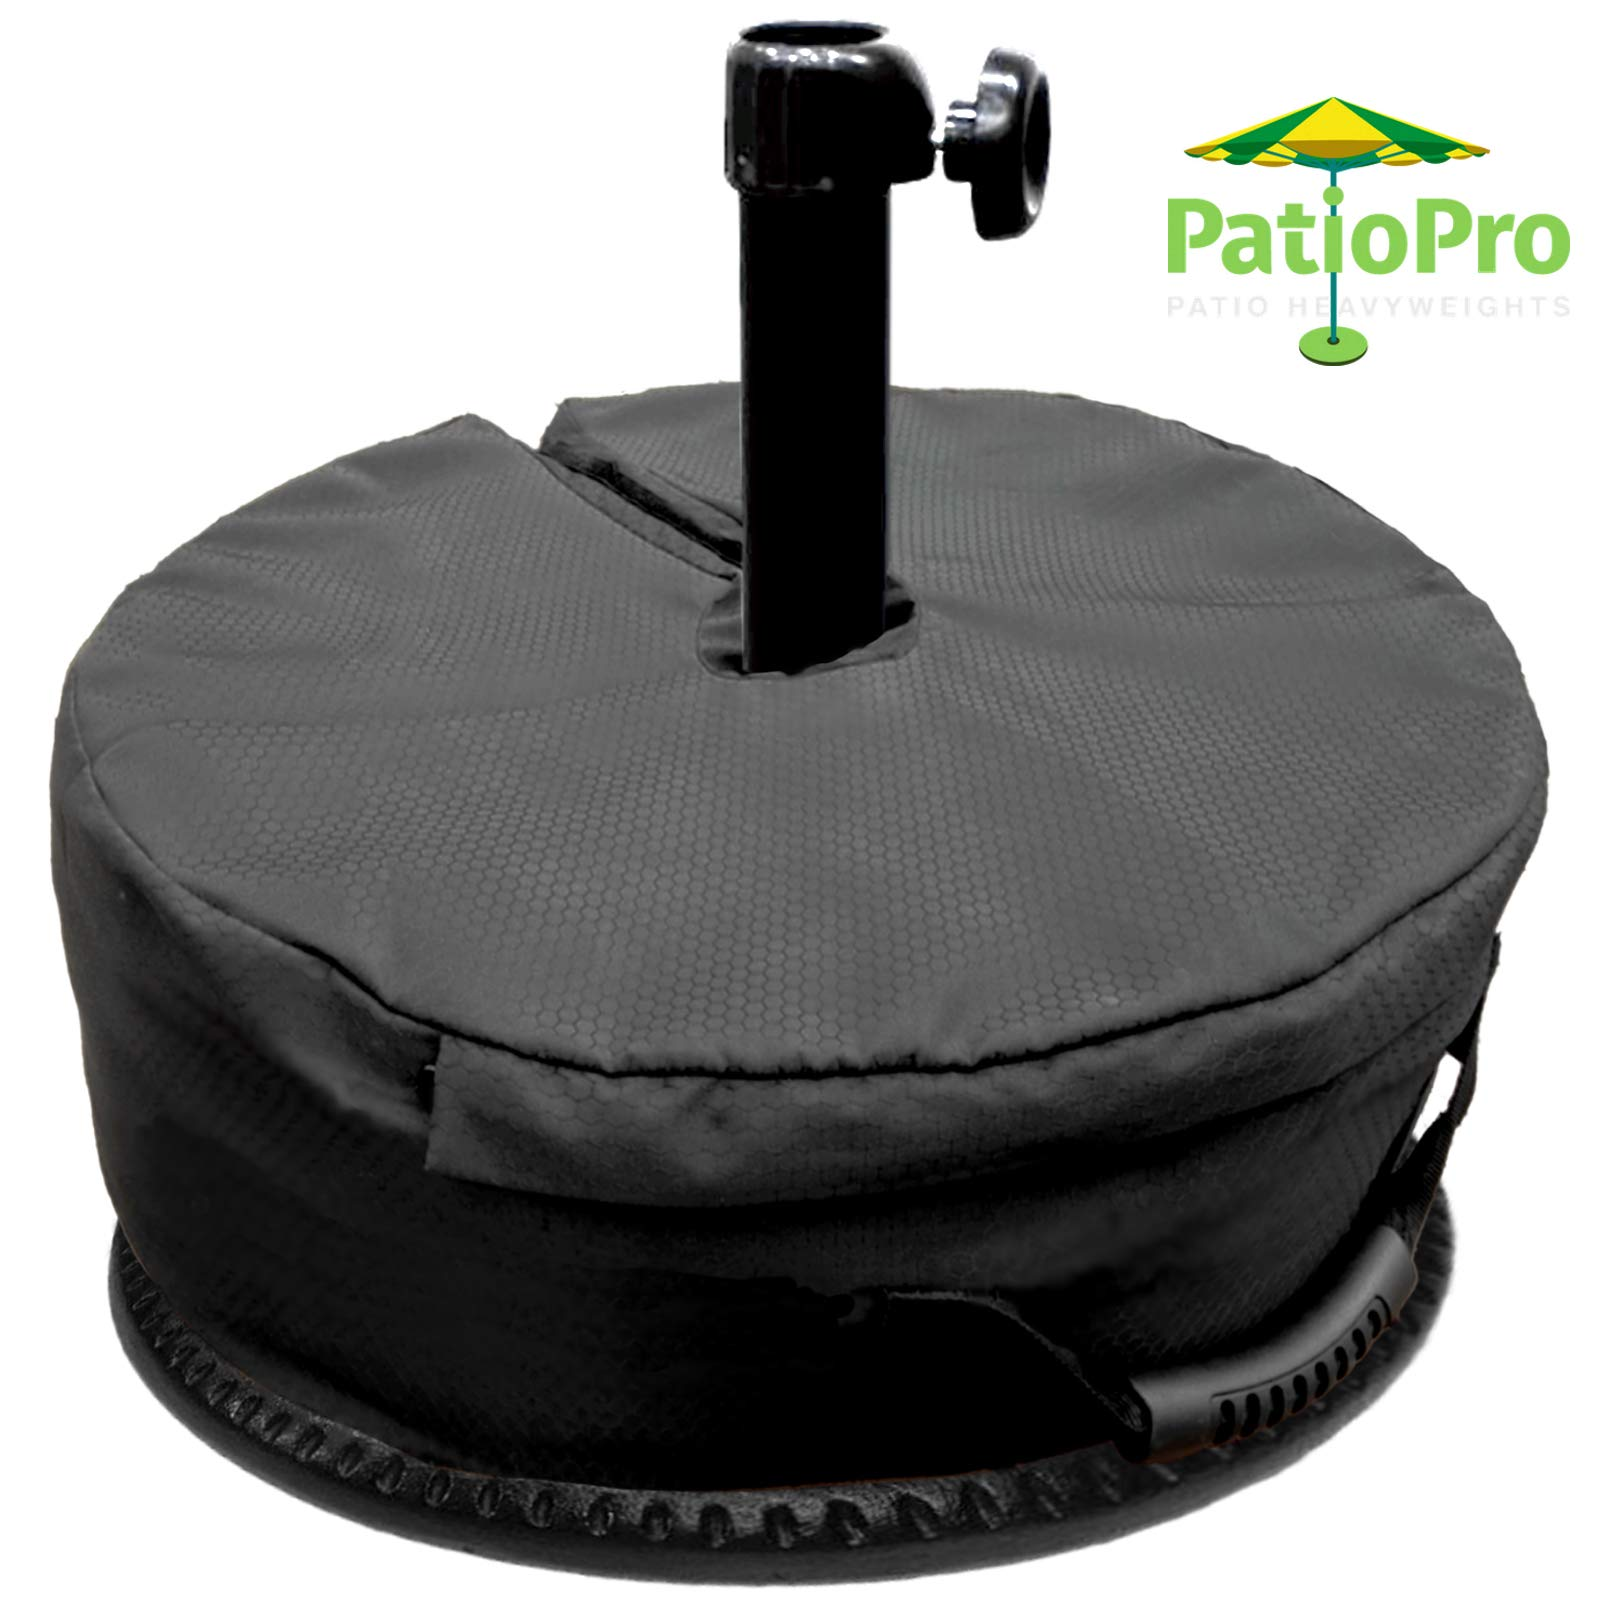 PatioPRO 17'' Umbrella Base Weight Bag for Umbrella Stand - Safety Outdoor Patio Weatherproof Sand Bag, Easy Set Up, Fits All Outdoor Umbrellas, Cantilevers, Lamps, Flag Poles with Diameter 3'' to 3.5''